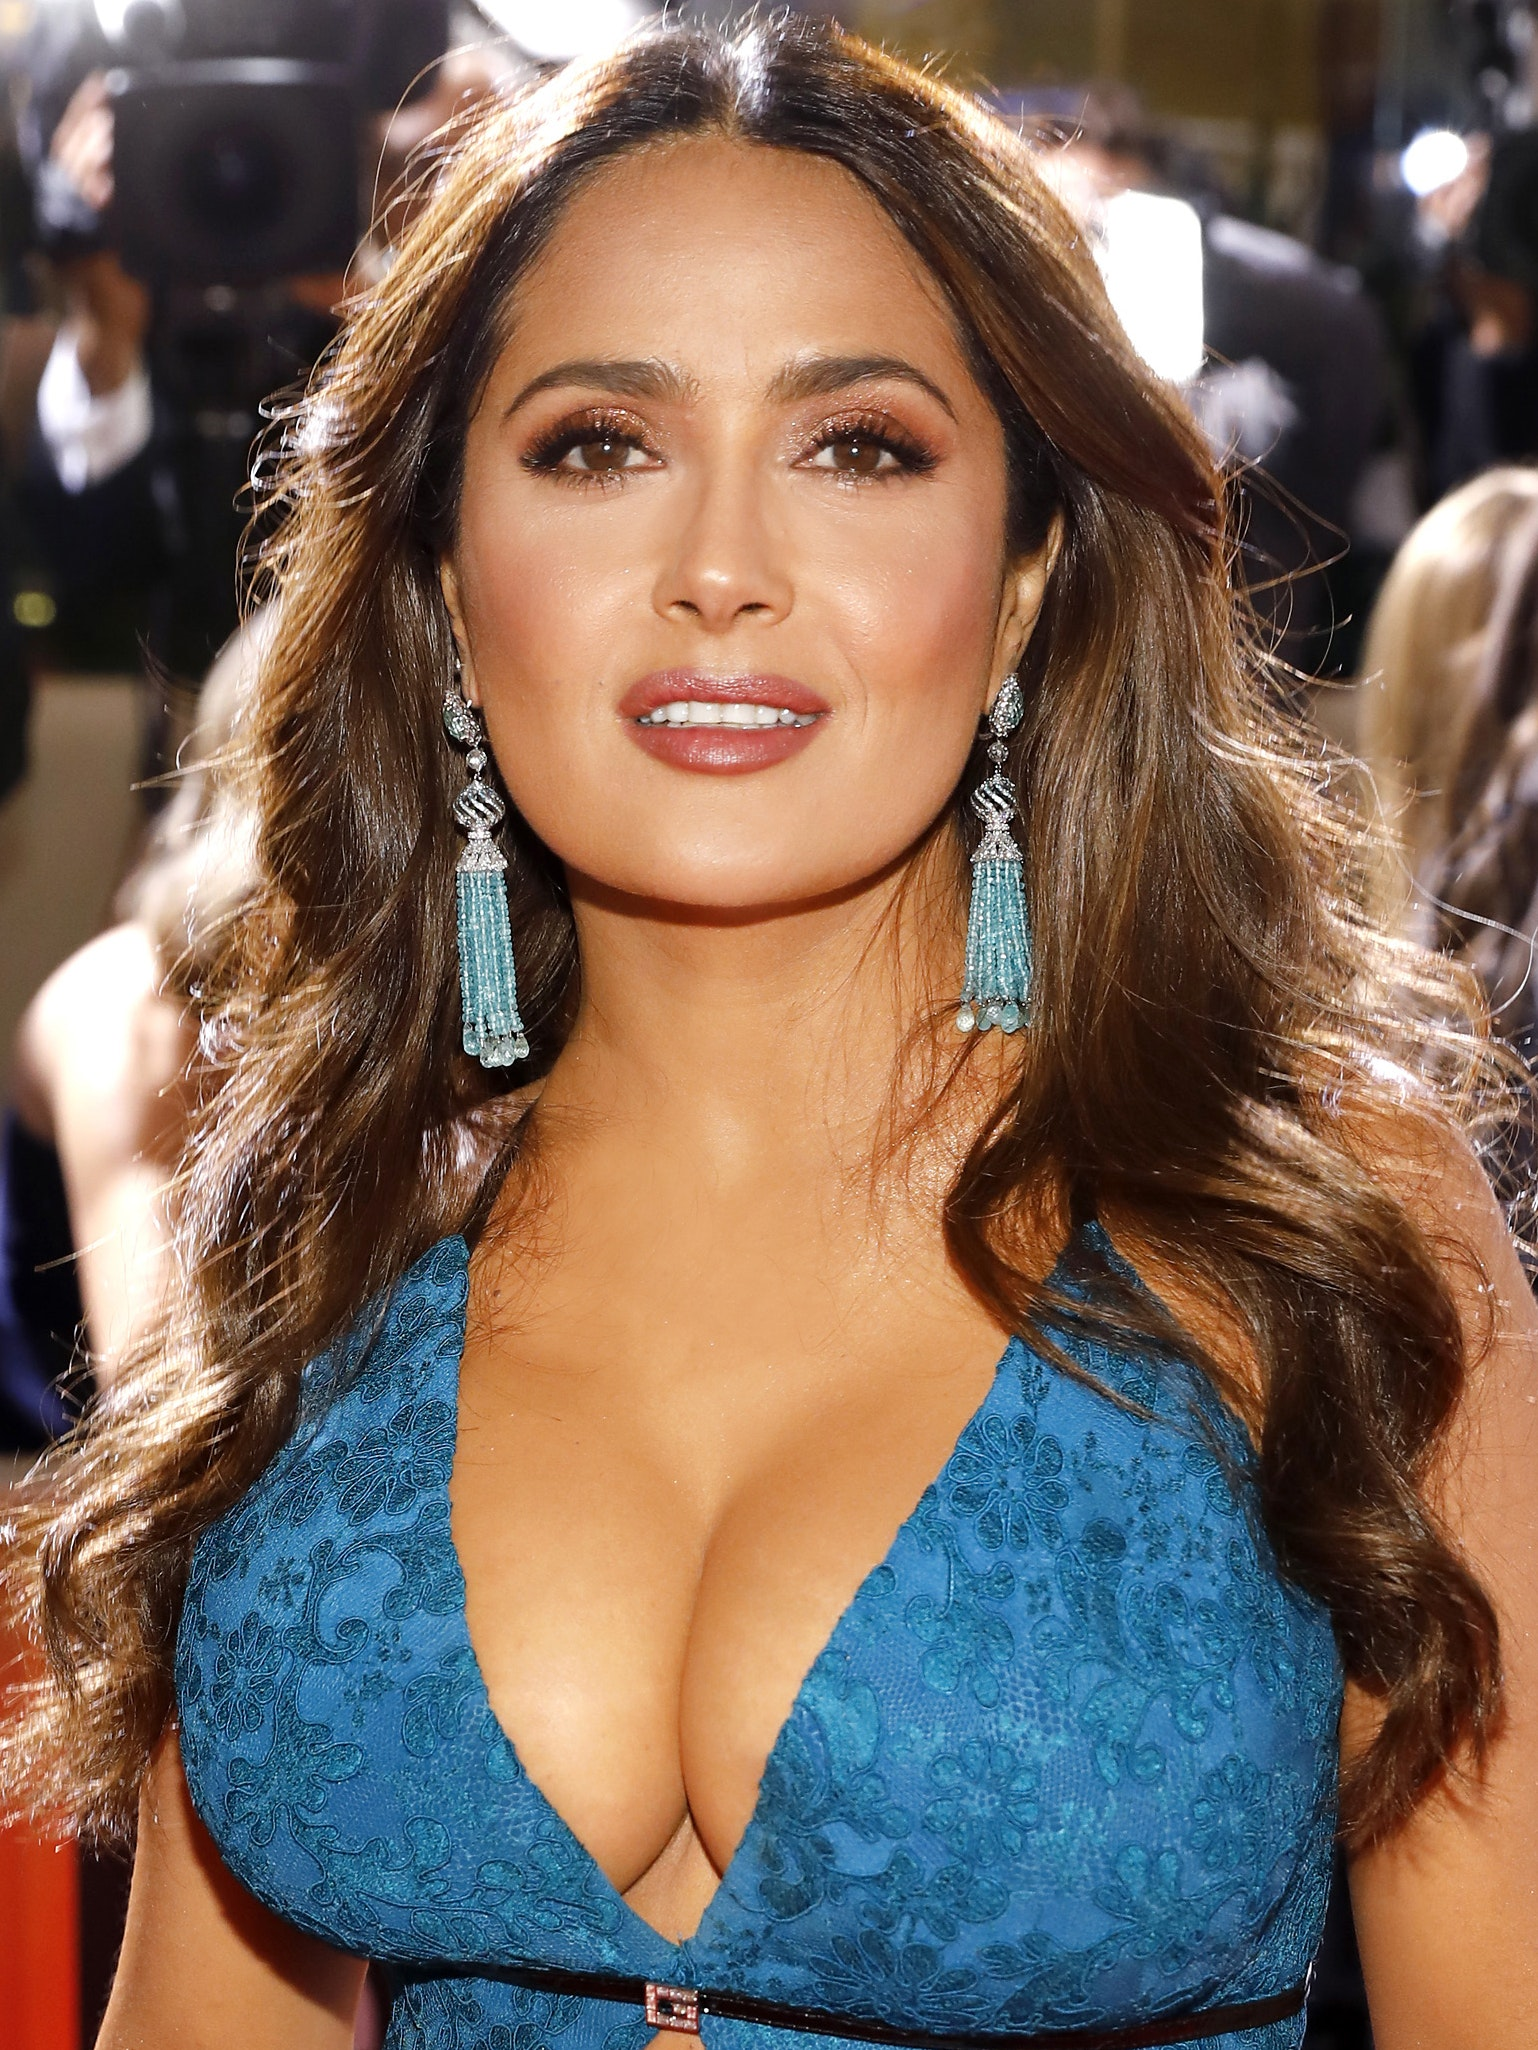 Salma Hayek golden globes hair makeup look 2020